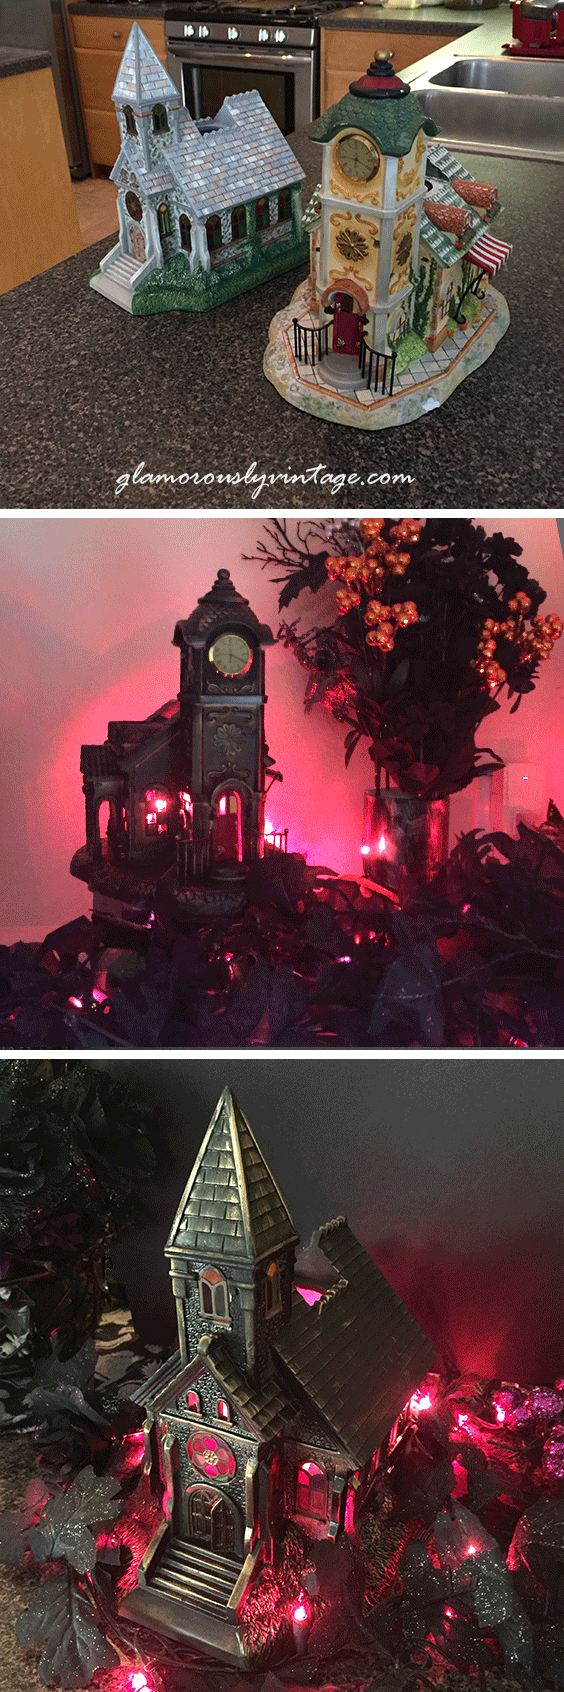 Spooky Upcycled Halloween Houses | I was cruising Pinterest one day and saw the neatest Halloween decorating idea, use those old chipped up ceramic houses and upcycle them to make spooky Halloween Houses!